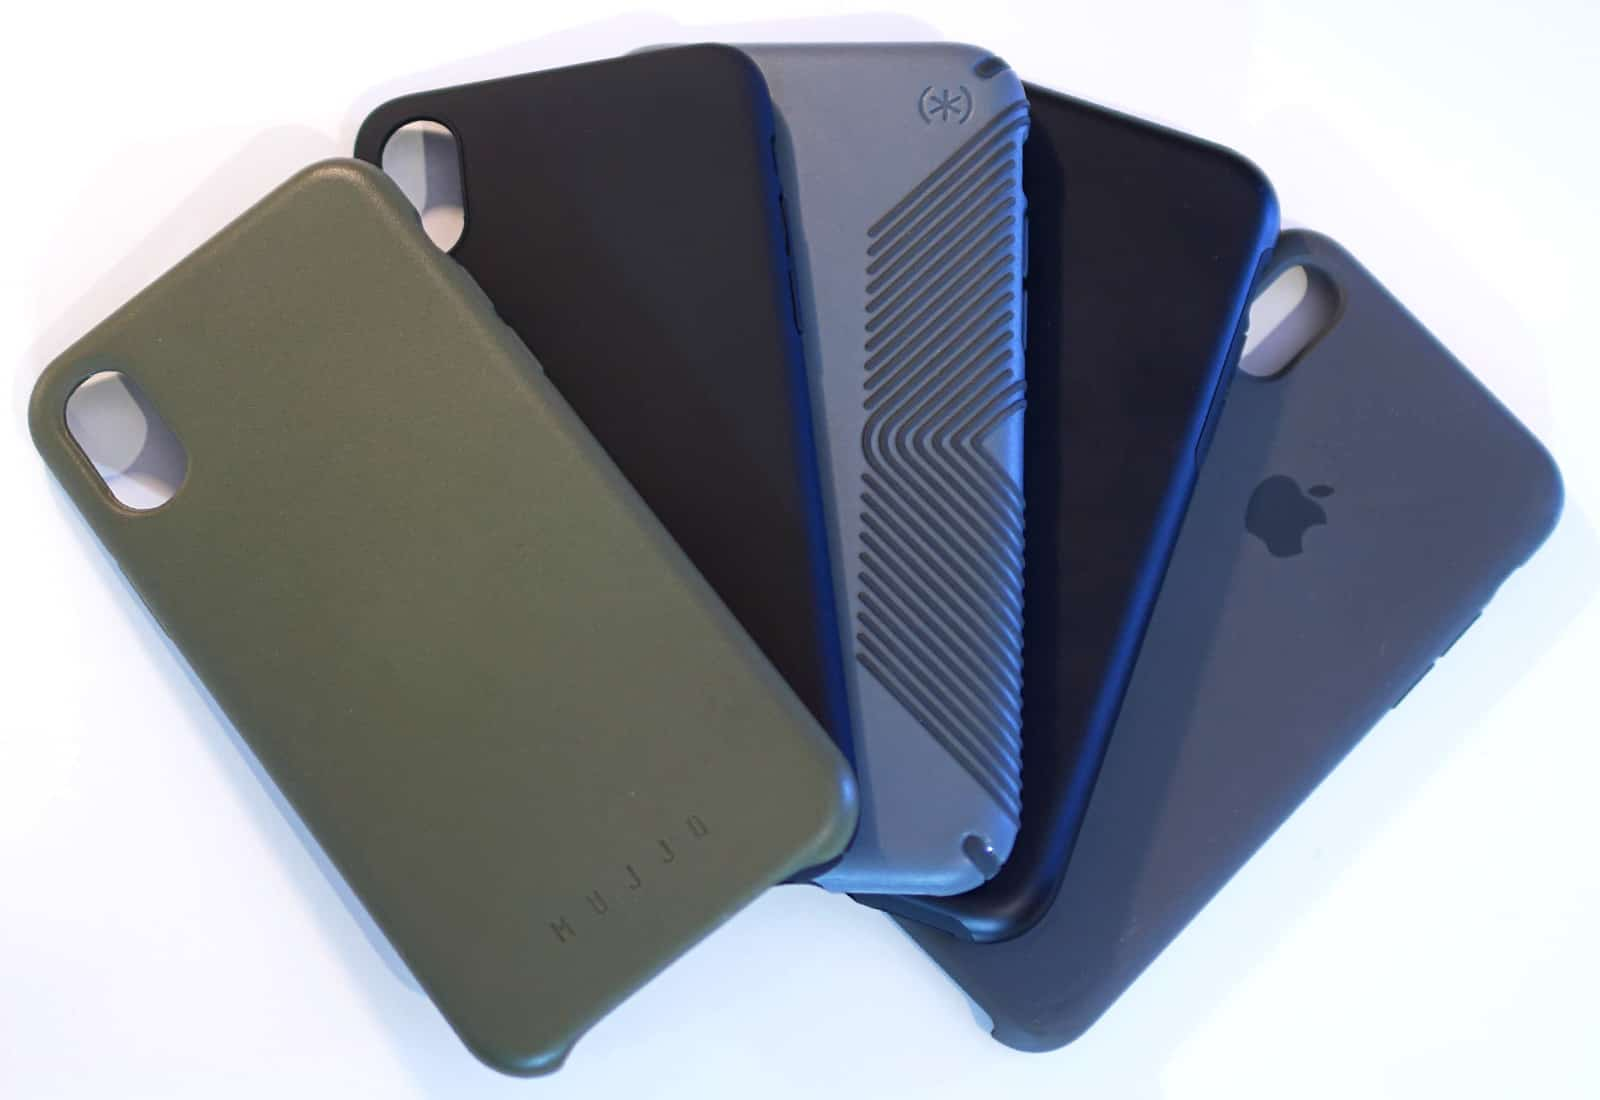 iPhone X case roundup